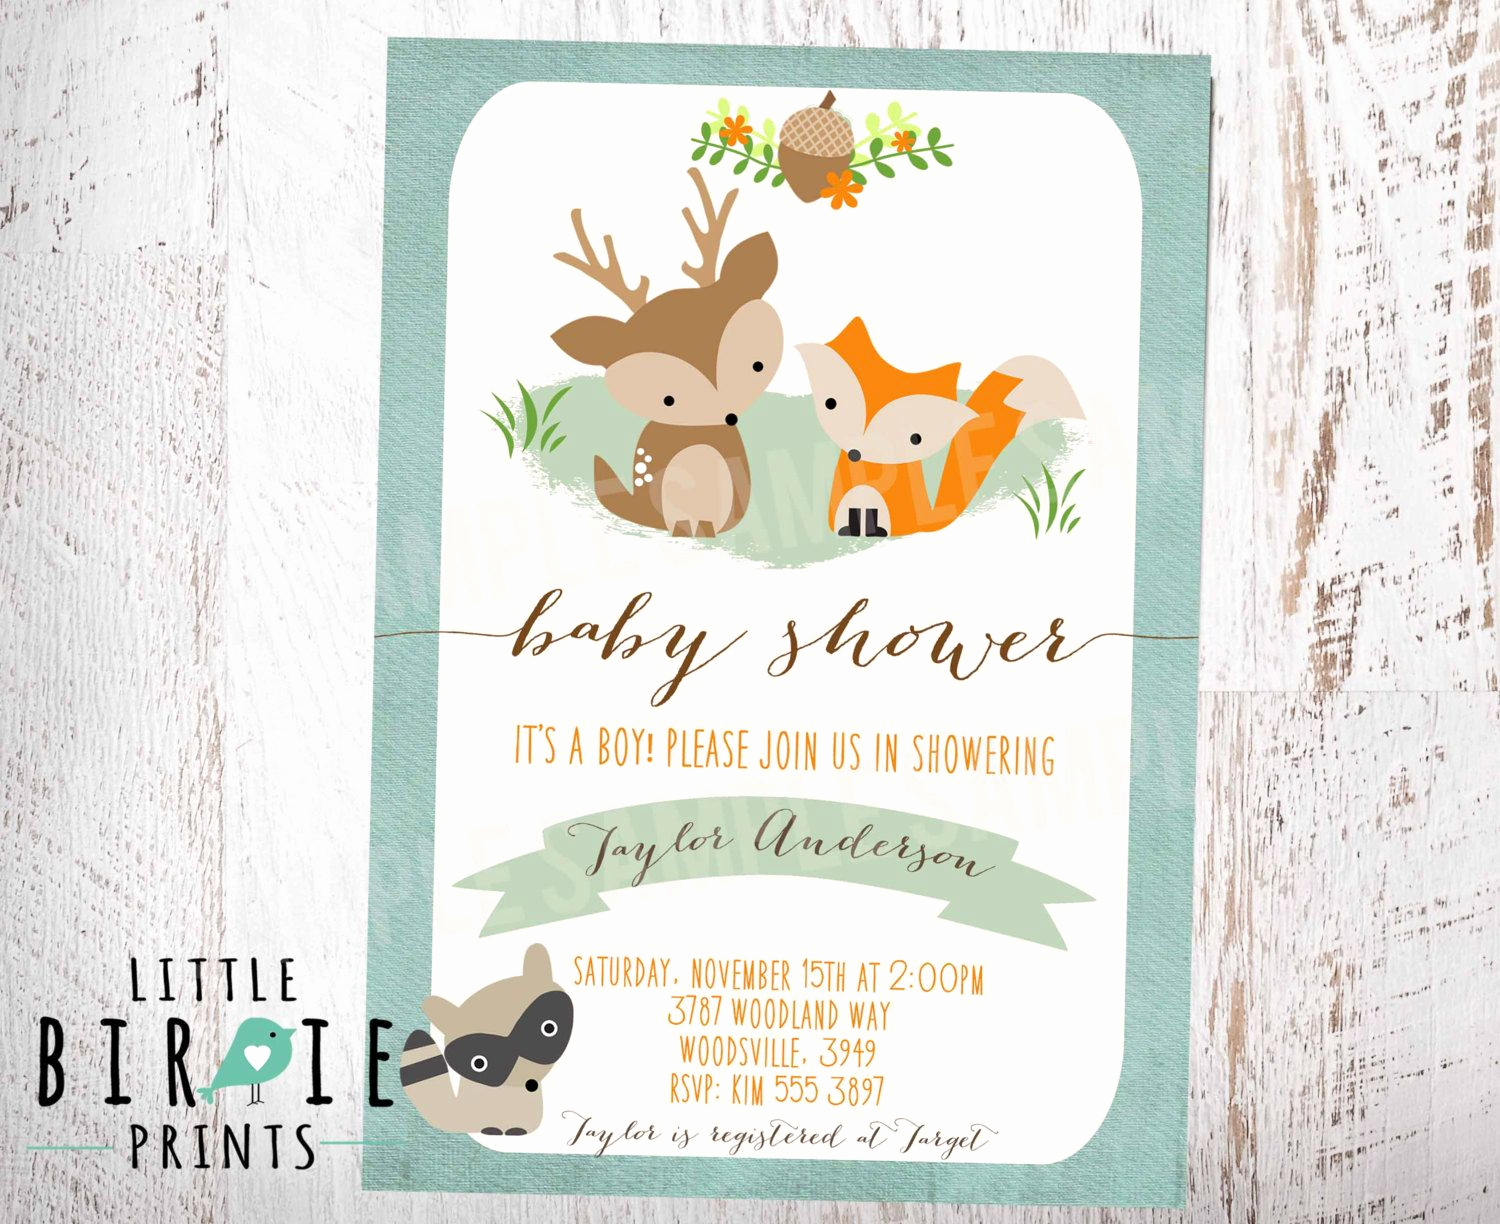 Woodland Baby Shower Invitation New Woodland Baby Shower Invitation Fox Deer Raccoon Boy